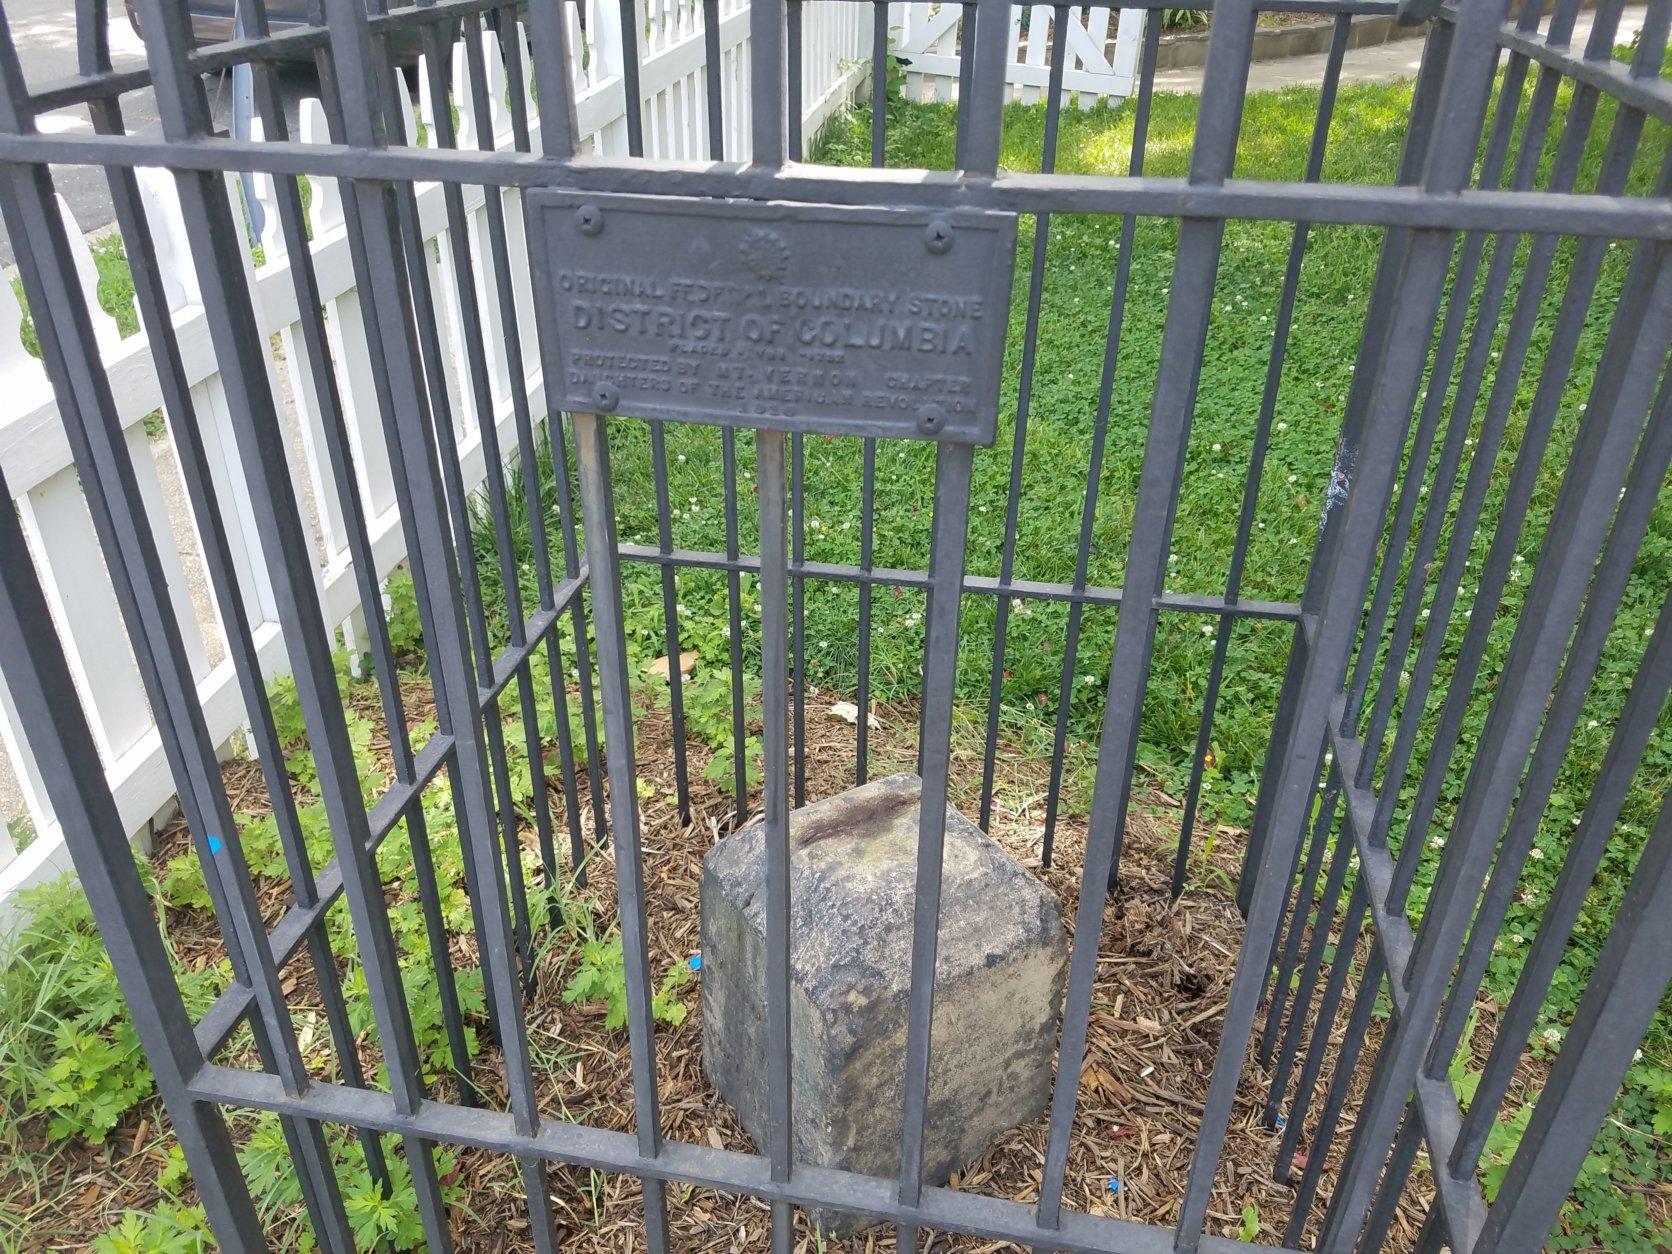 The SW1 Boundary Stone in Alexandria, Virginia. (WTOP/William Vitka)